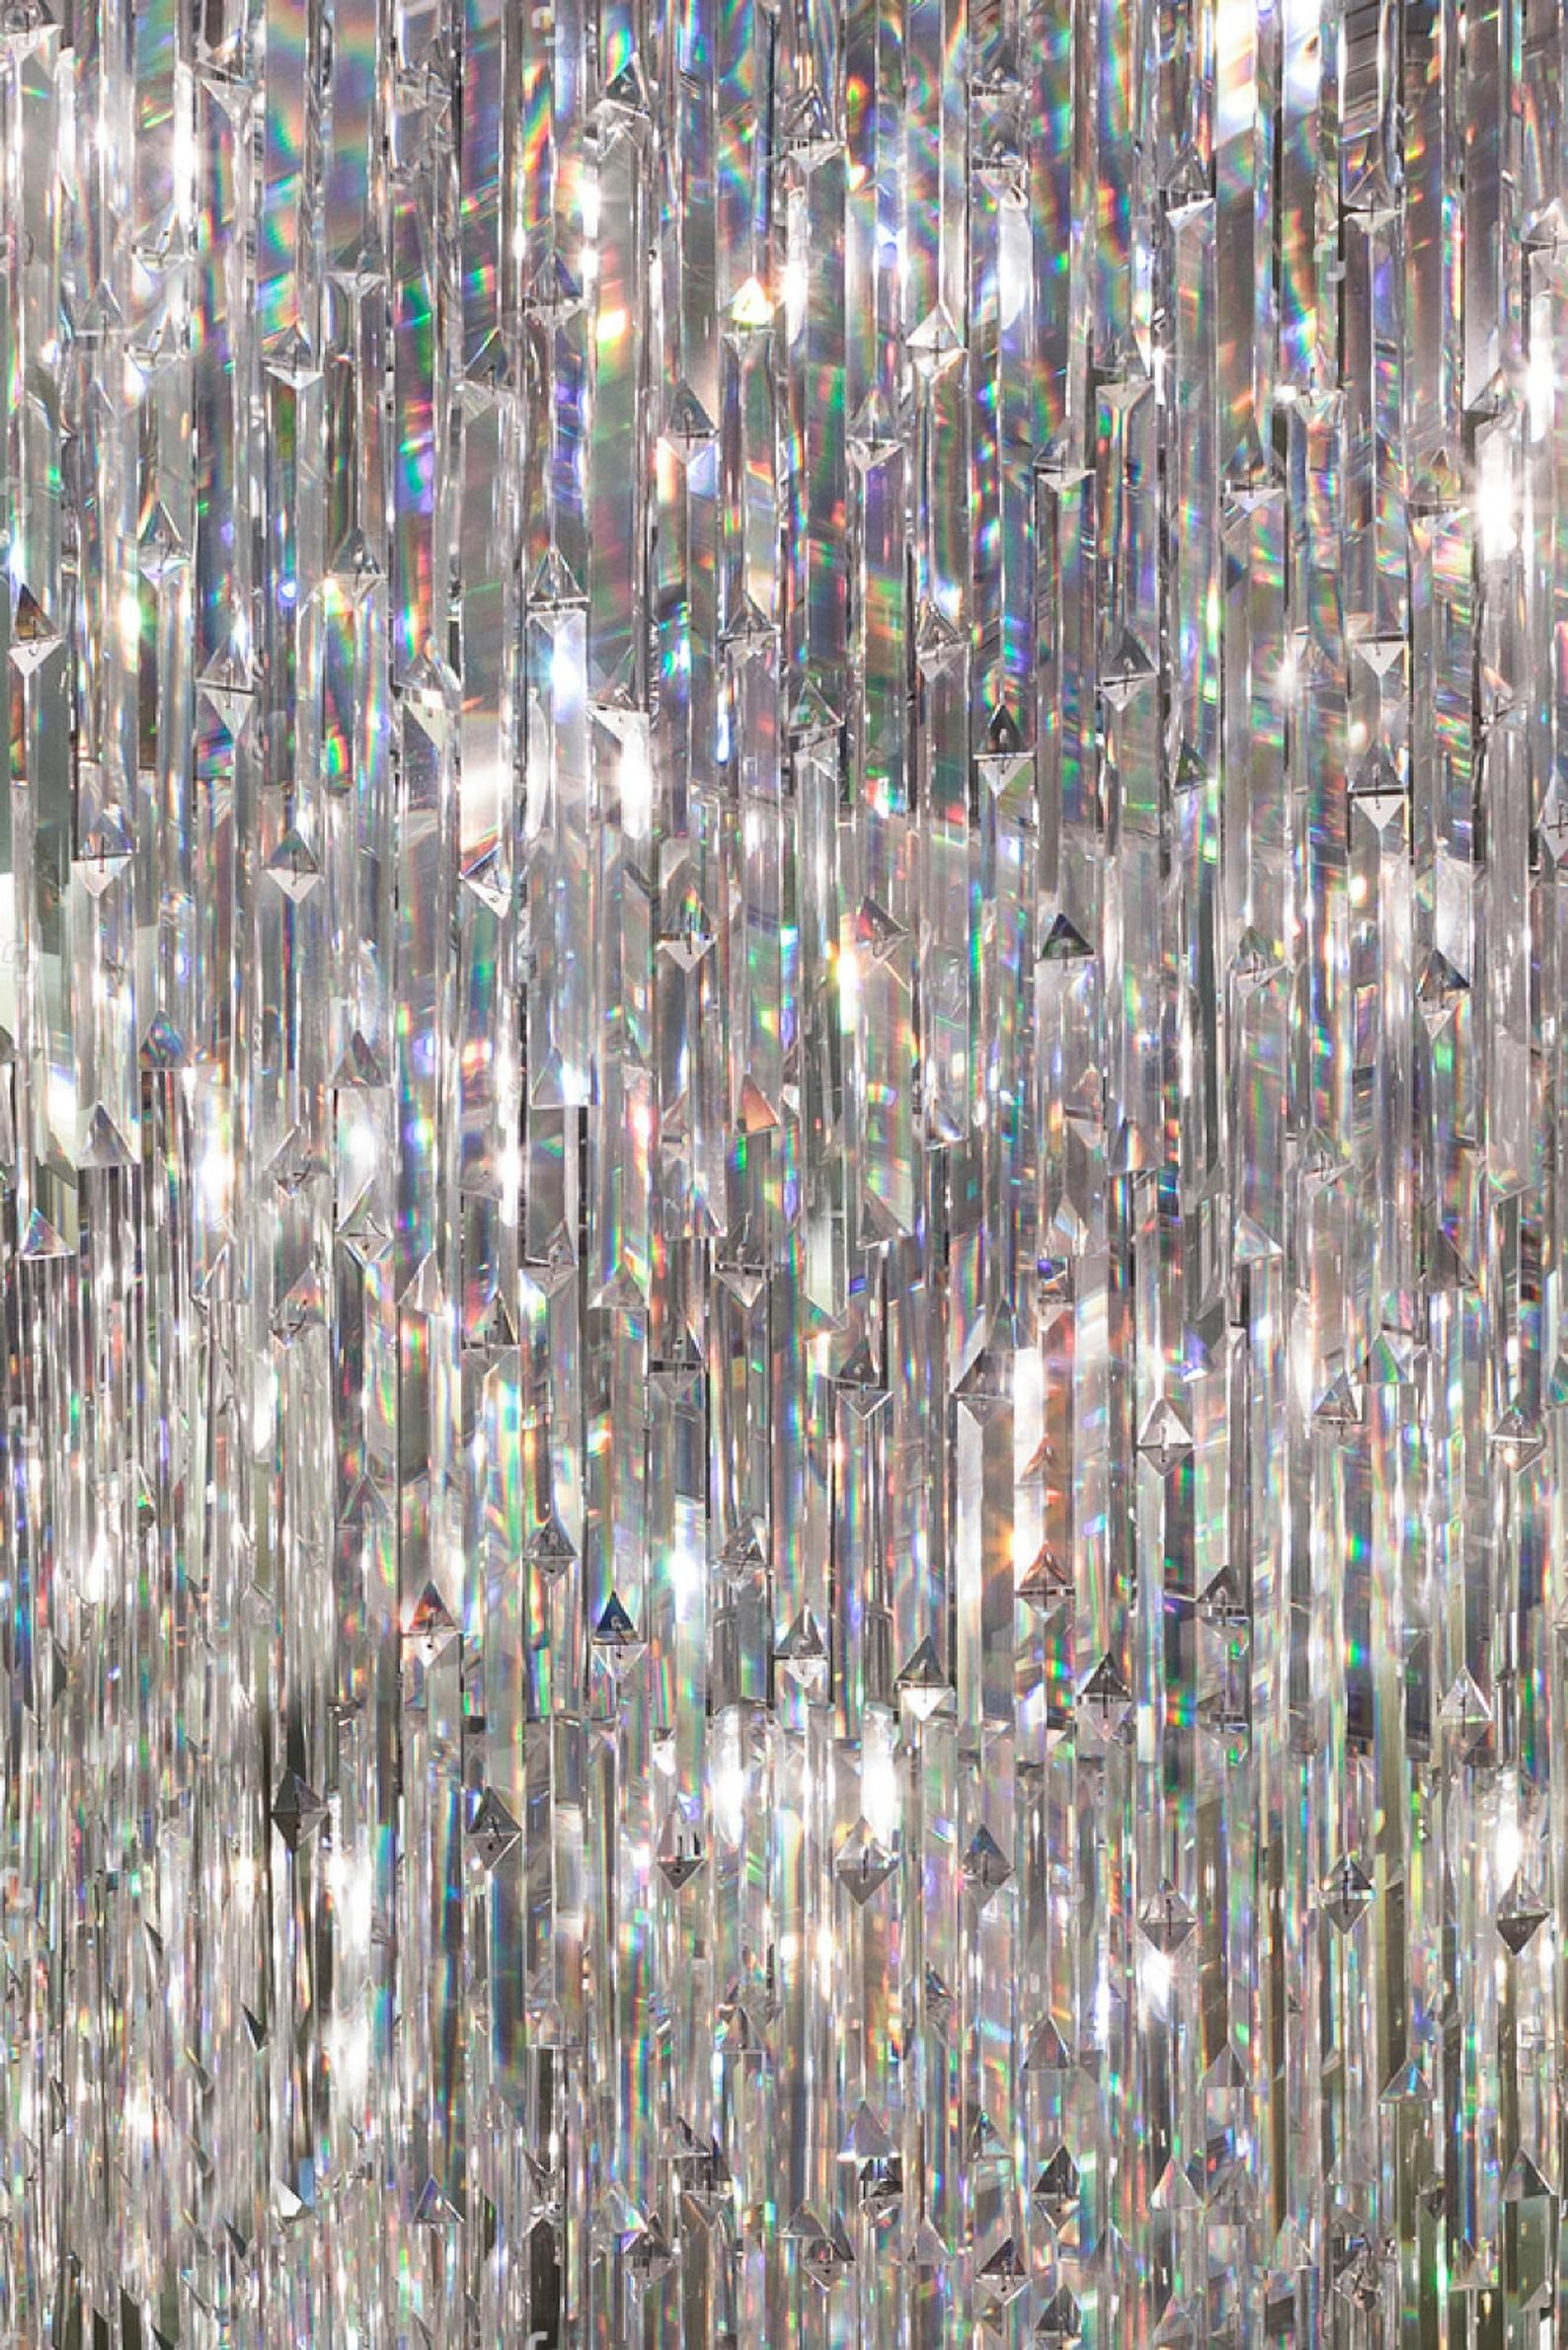 Door Wall Sticker Inspired By The Crystal Chandelier Pendants Self Adhesive Vinyl Decal Poster Mural Self Adhesive Wallpaper Iphone Wallpaper Glitter Glitter Wallpaper Iphone Background Wallpaper